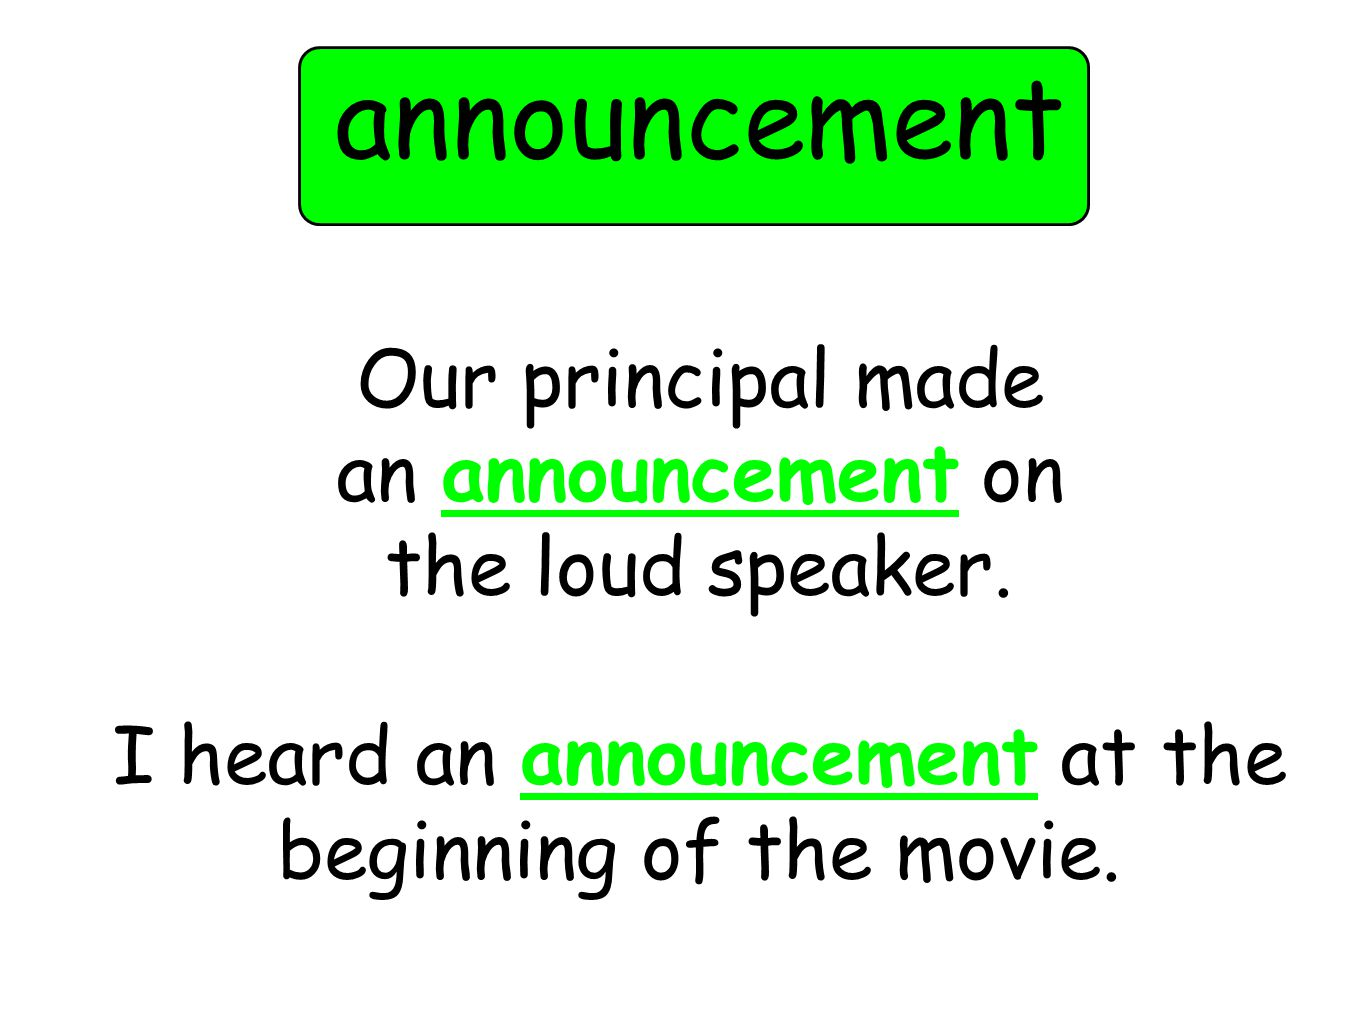 Our principal made an announcement on the loud speaker.